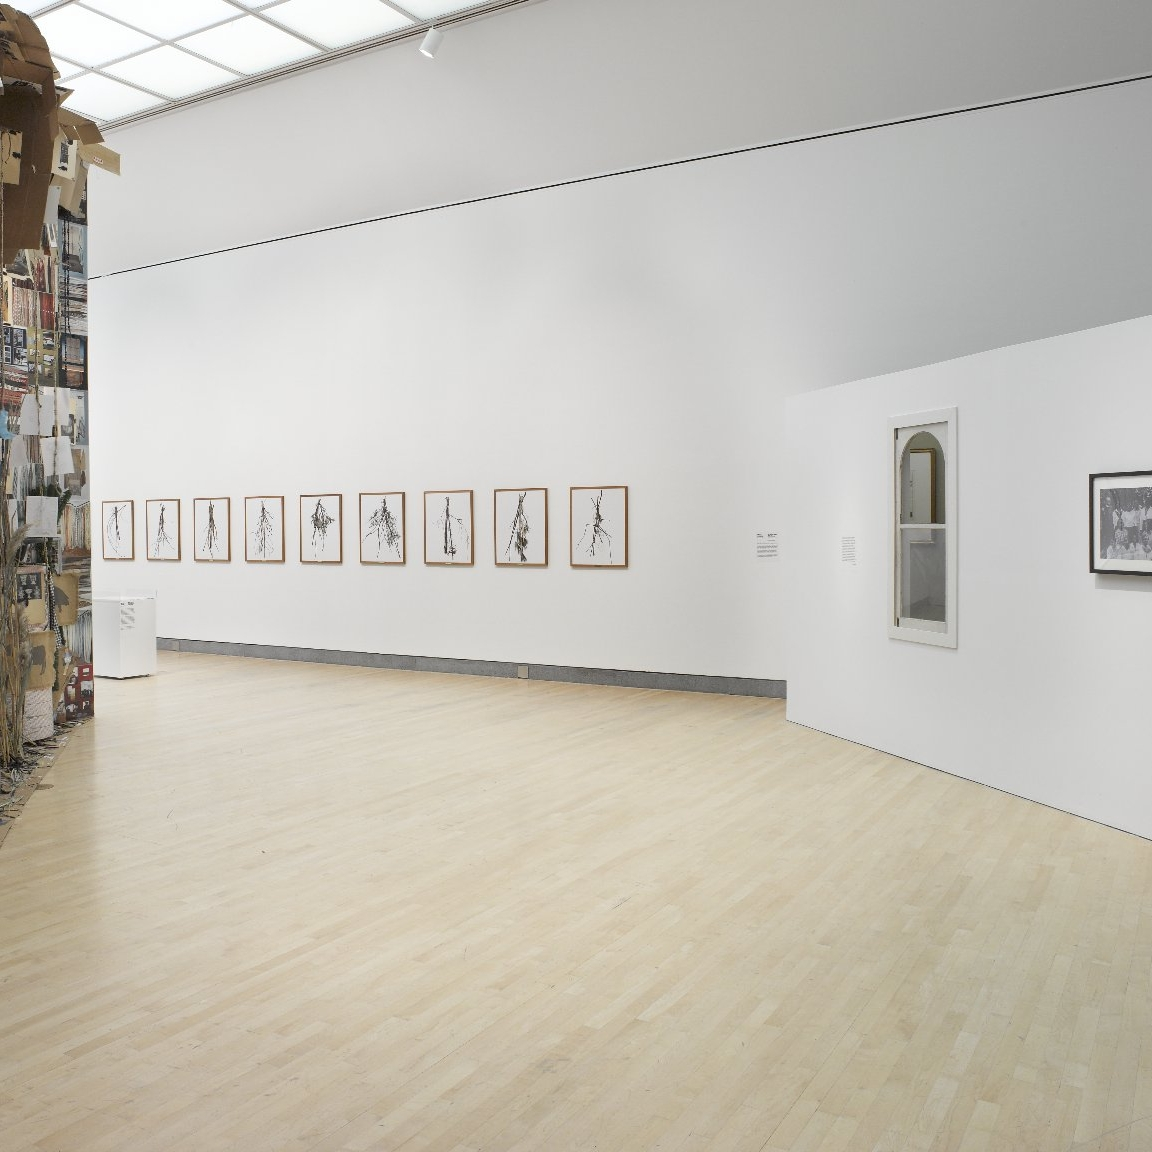 Local Heroes: The Brooklyn Museum Surveys Recent Art from the Boroughs - October 20, 2014 | The New Yorker | Peter Schjeldahl